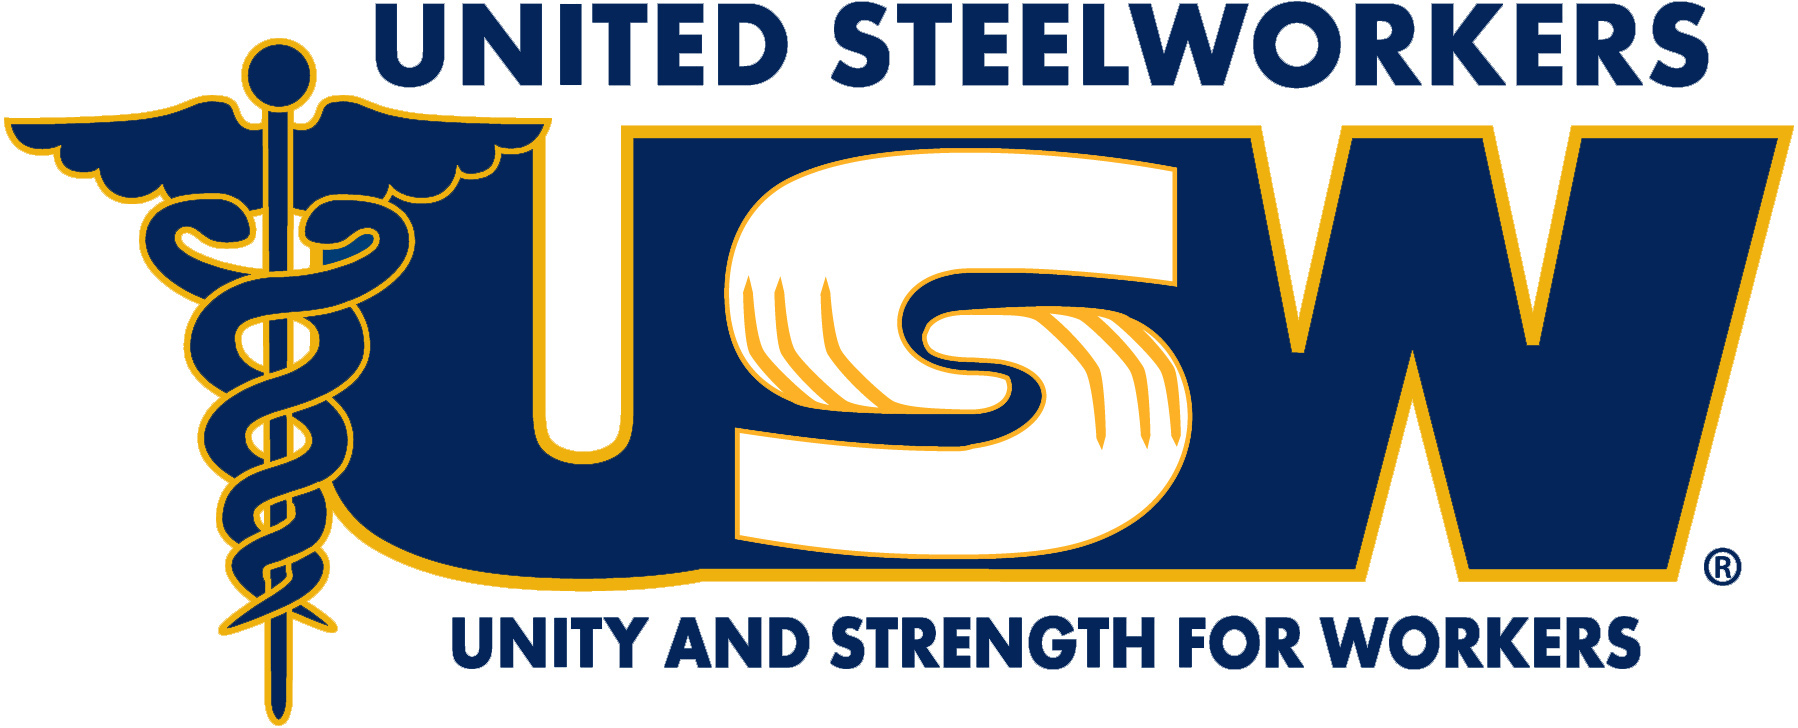 Download Usw Logos United Steelworkers